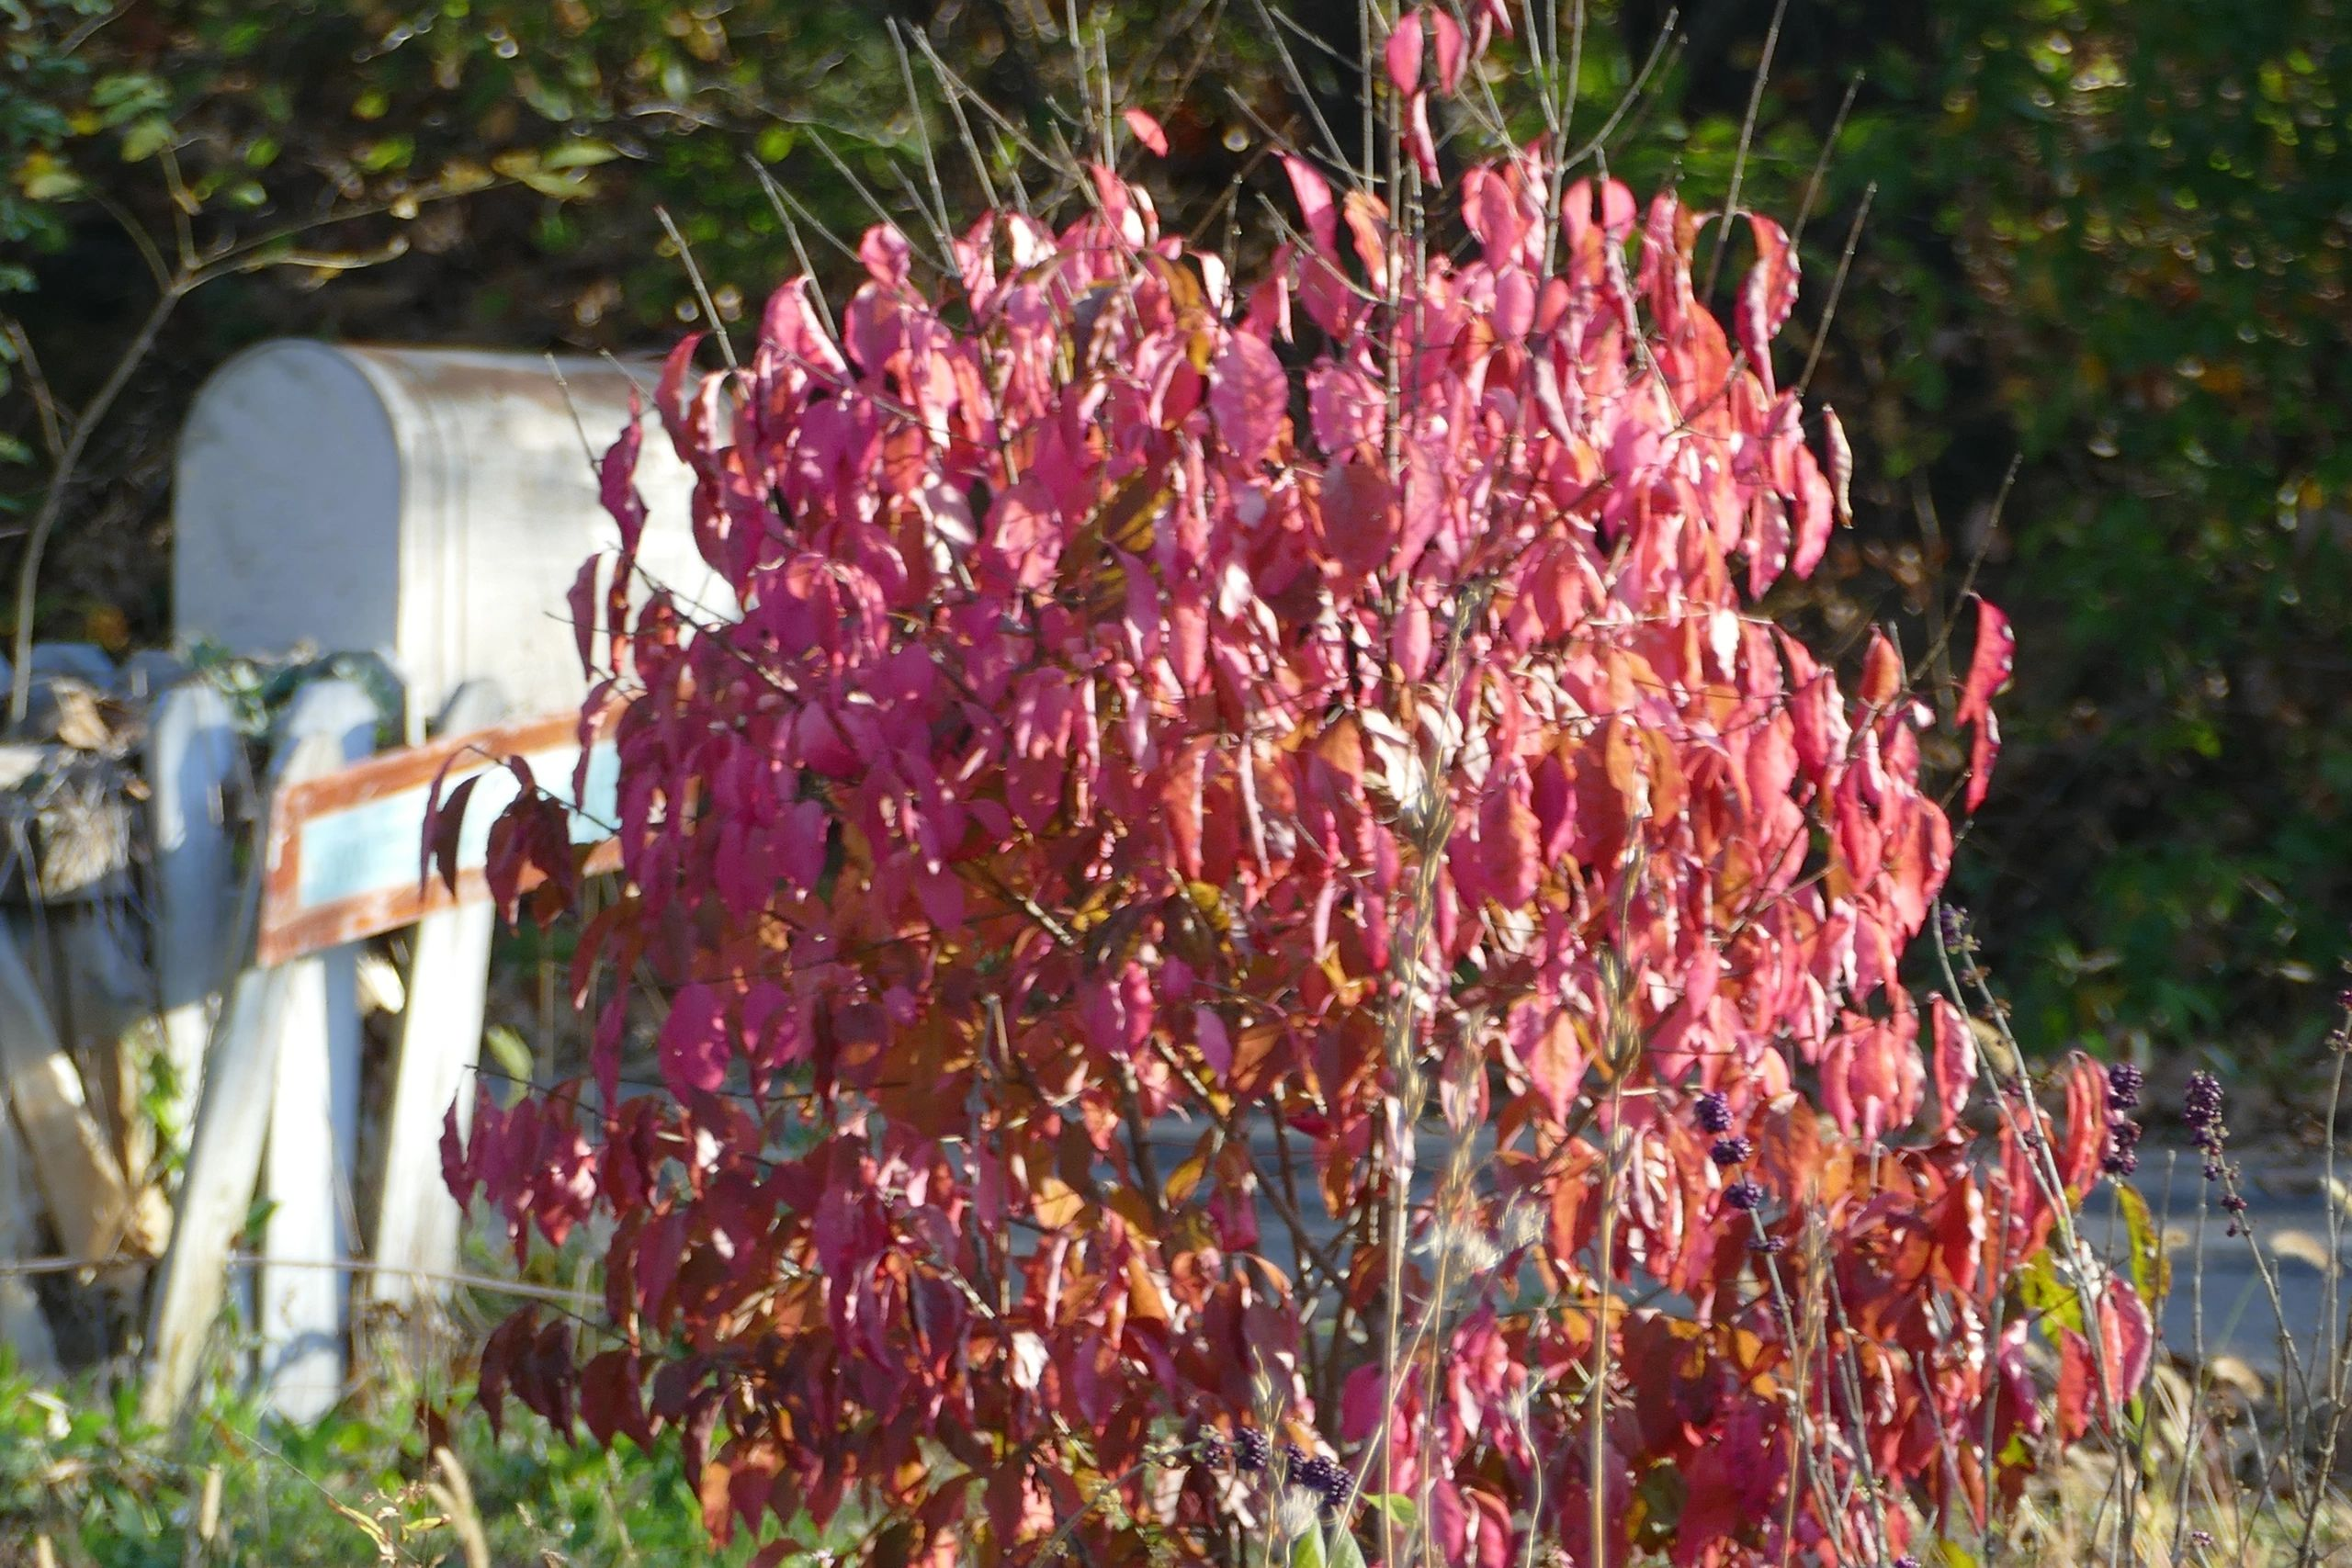 "{""blocks"":[{""key"":""90ofk"",""text"":""photo Euonymus atropurpureus Eastern Wahoo - potted plants email john@easywildflowers.com "",""type"":""unstyled"",""depth"":0,""inlineStyleRanges"":[],""entityRanges"":[],""data"":{}}],""entityMap"":{}}"